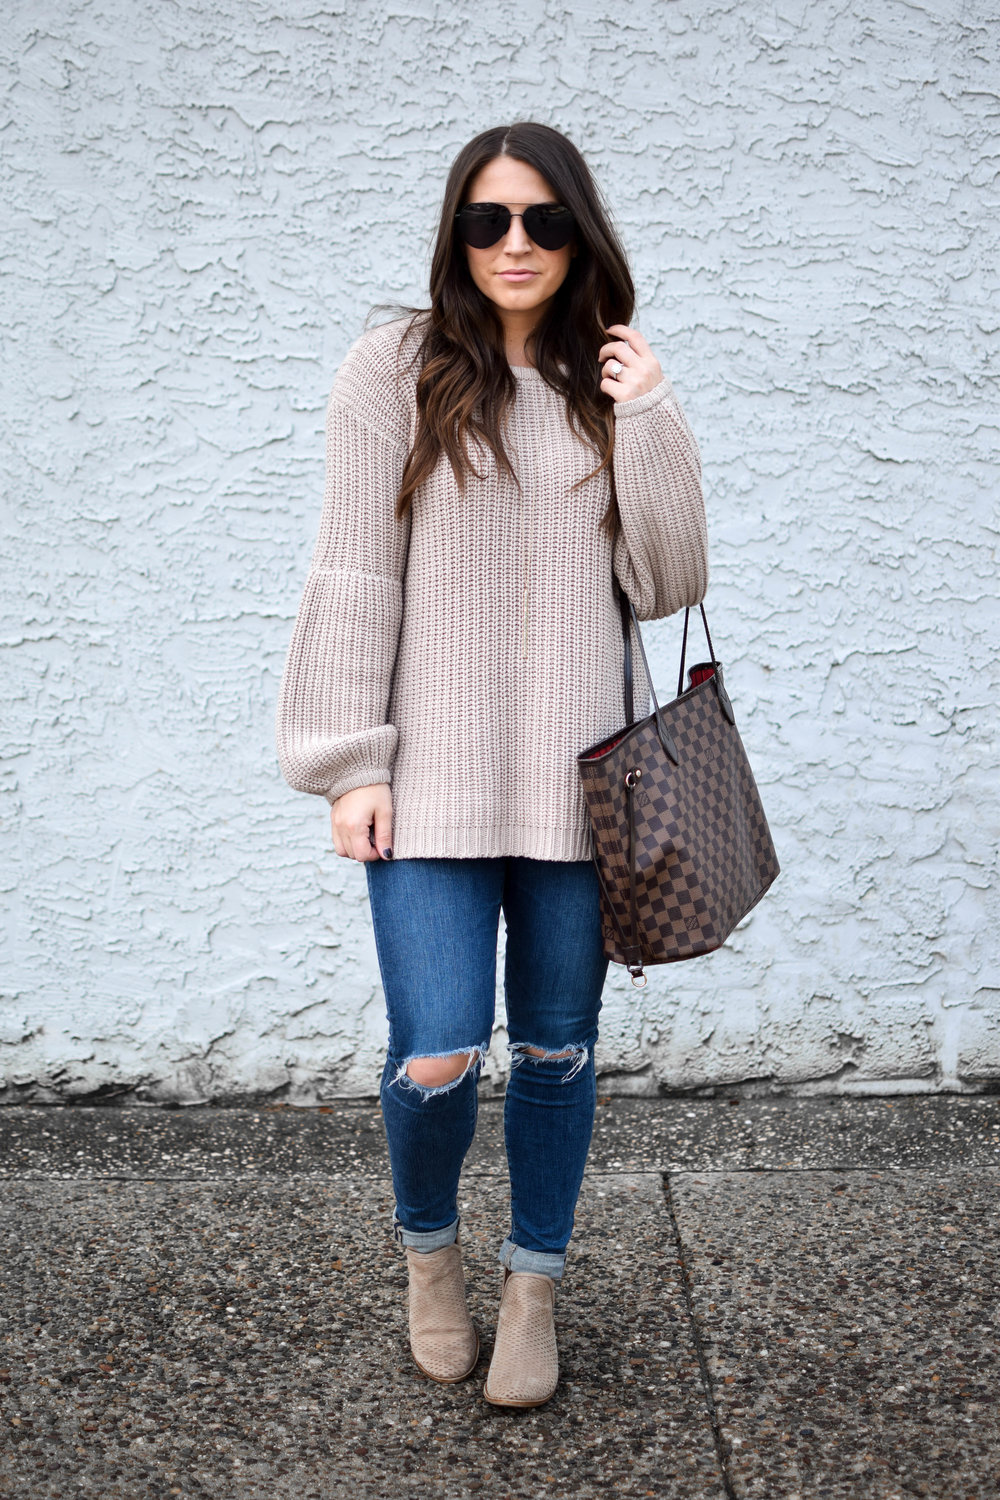 fall fashion / fall outfit idea / fall outfit inspiration / cozy sweater / chunky knit / fall feels / diff eyewear